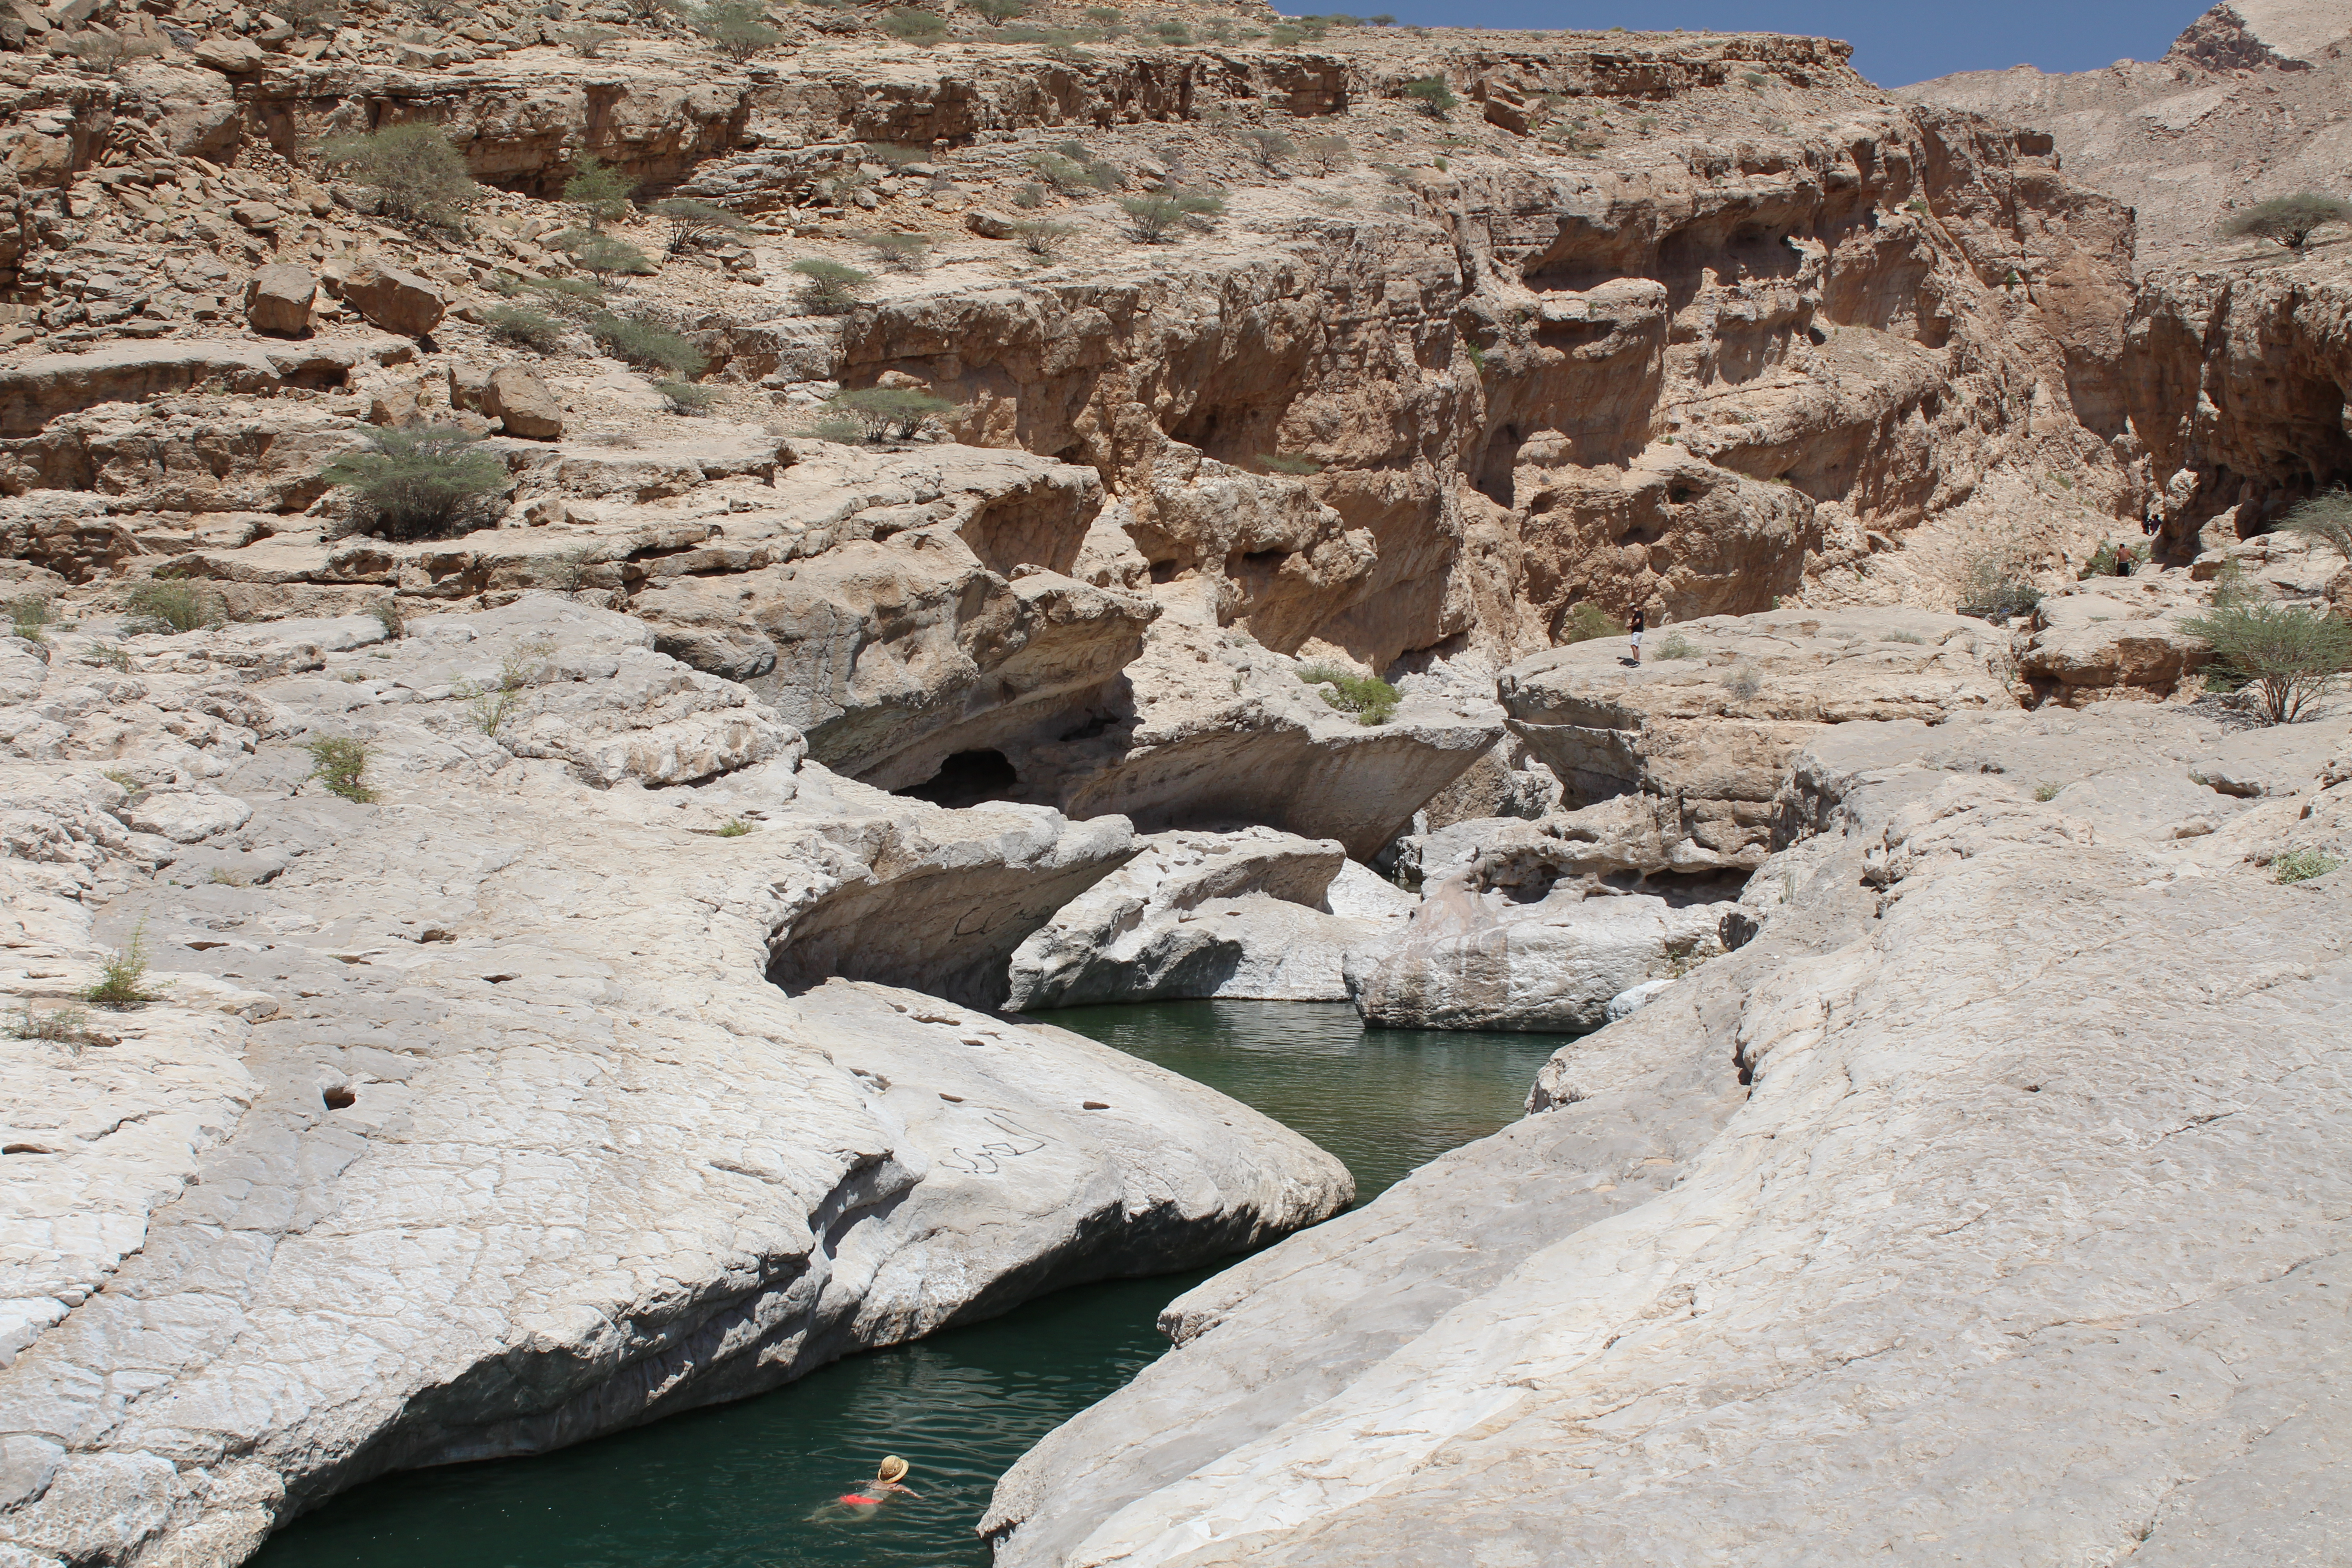 Lisa swims through Wadi Bank Khalid in Oman - at the end of this canyon was the waterfall Lisa fell down!